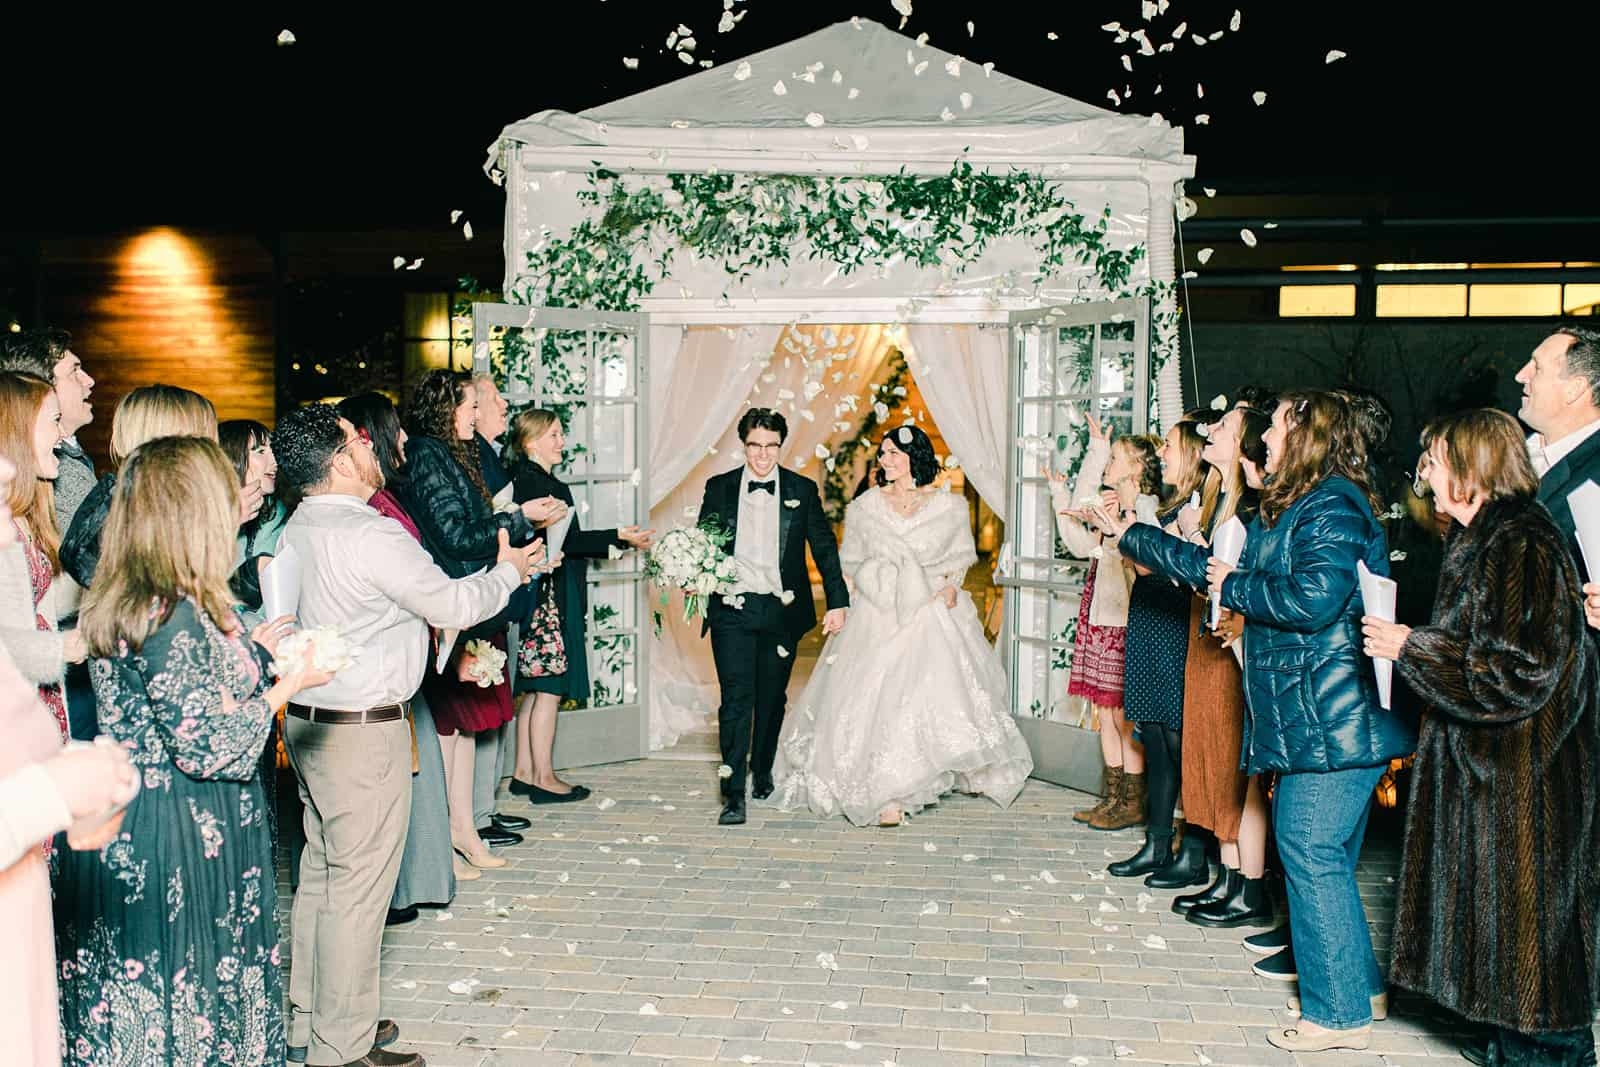 Winter wedding reception, bride and groom grand send off with rose petals